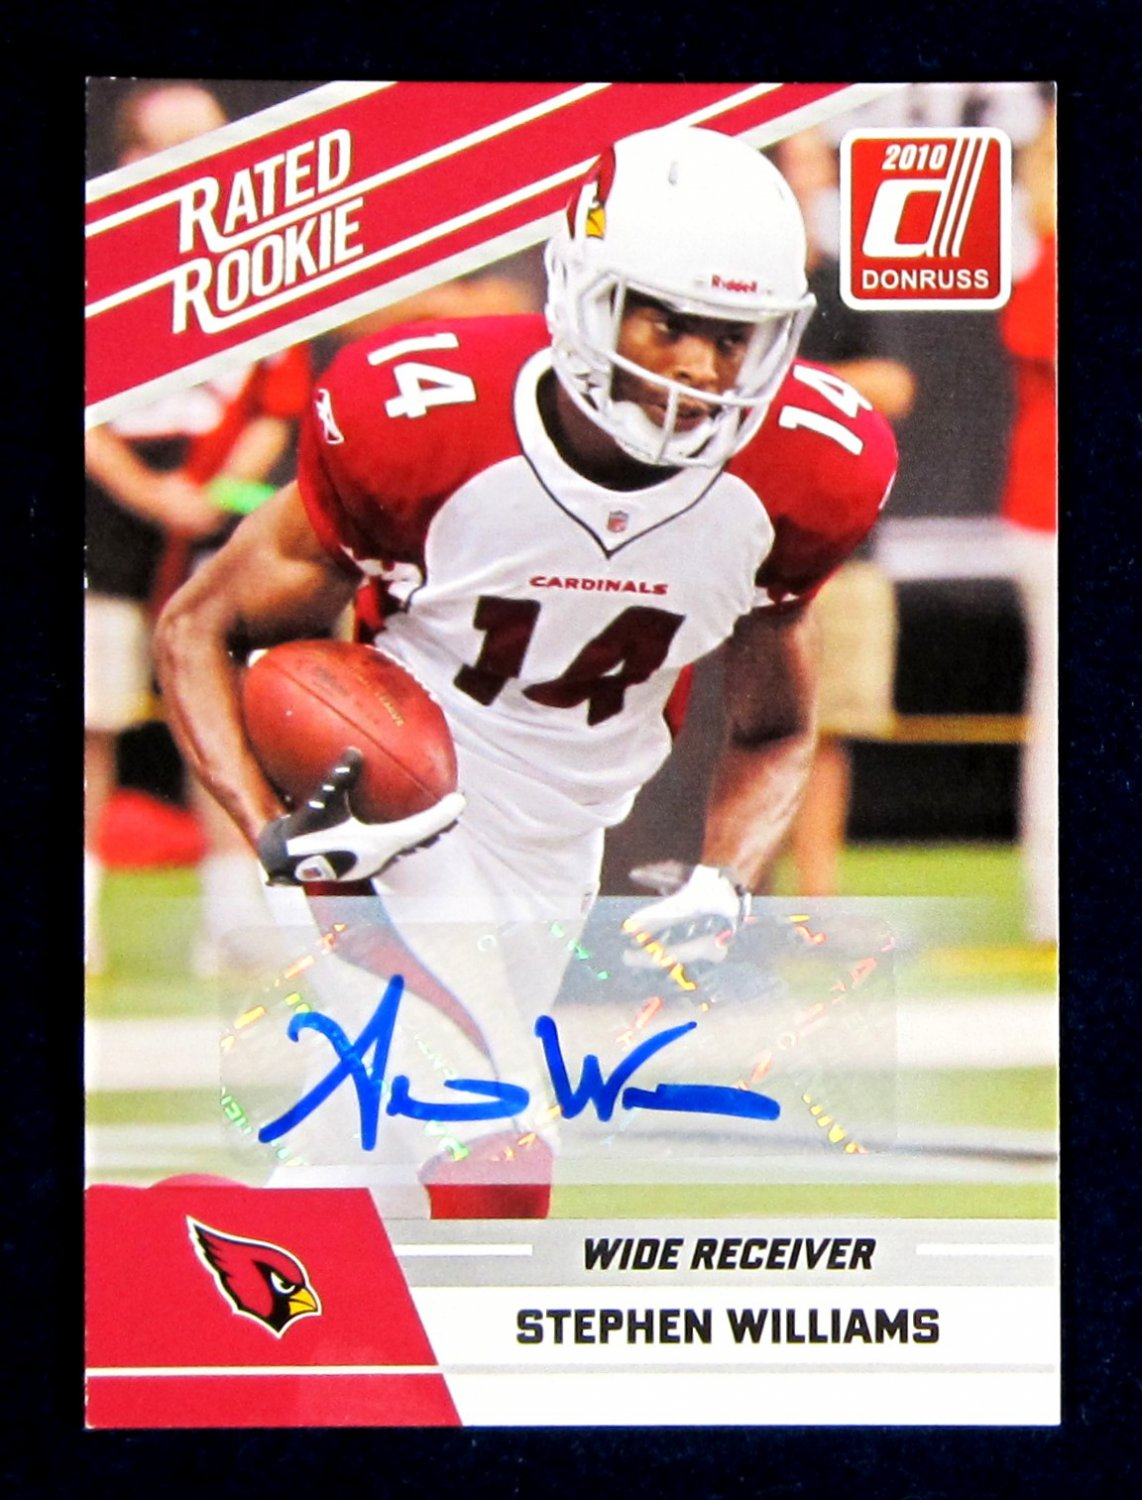 Stephen Williams Autograph 2010 Donruss Rated Rookie #92